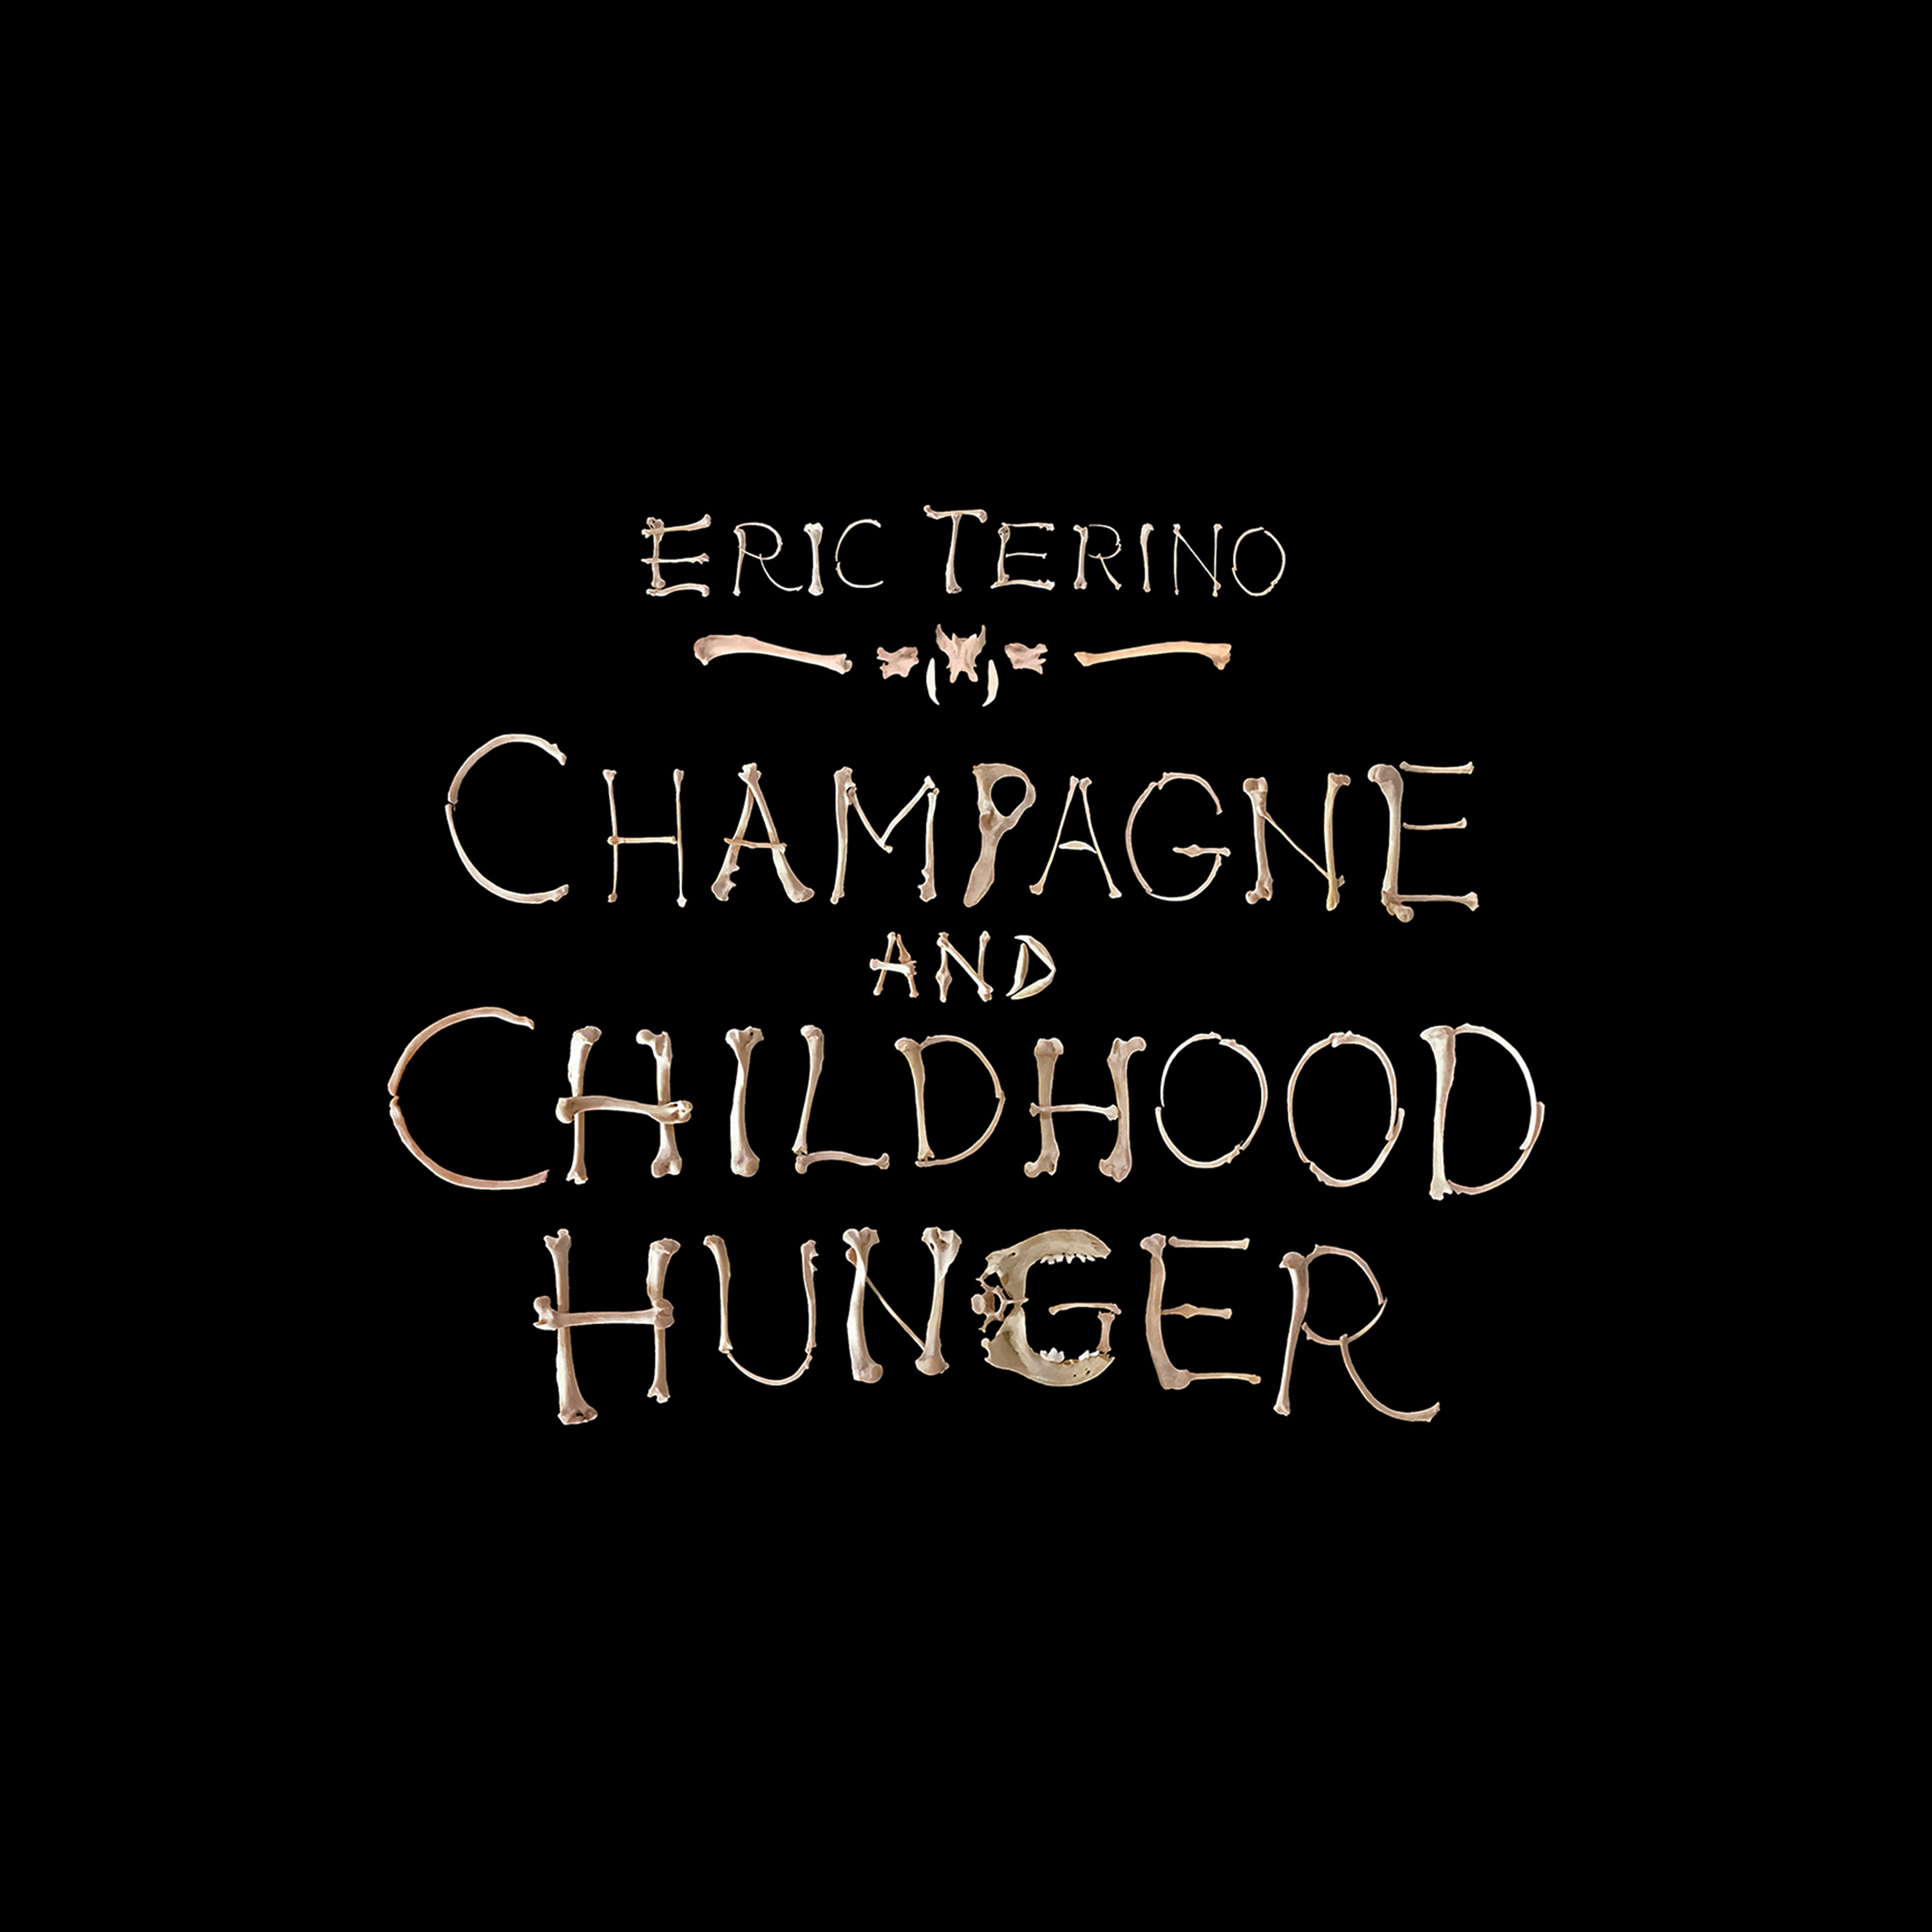 Eric Terino - Champagne and Childhood Hunger (Album Cover for Digital).jpg